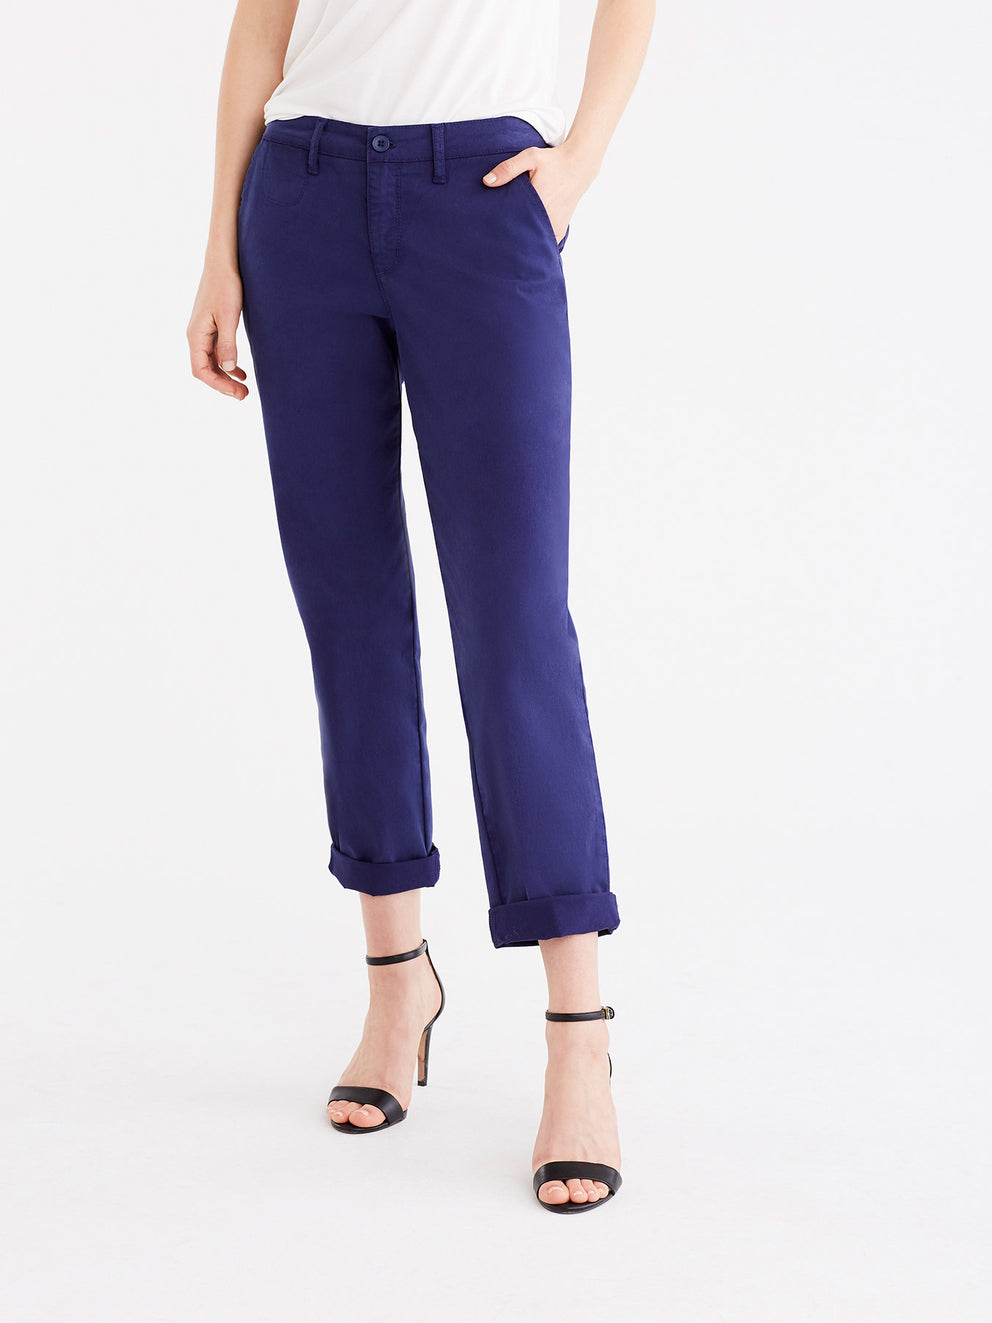 The Jones New York Classic Cropped Chino in color Navy - Image Position 3